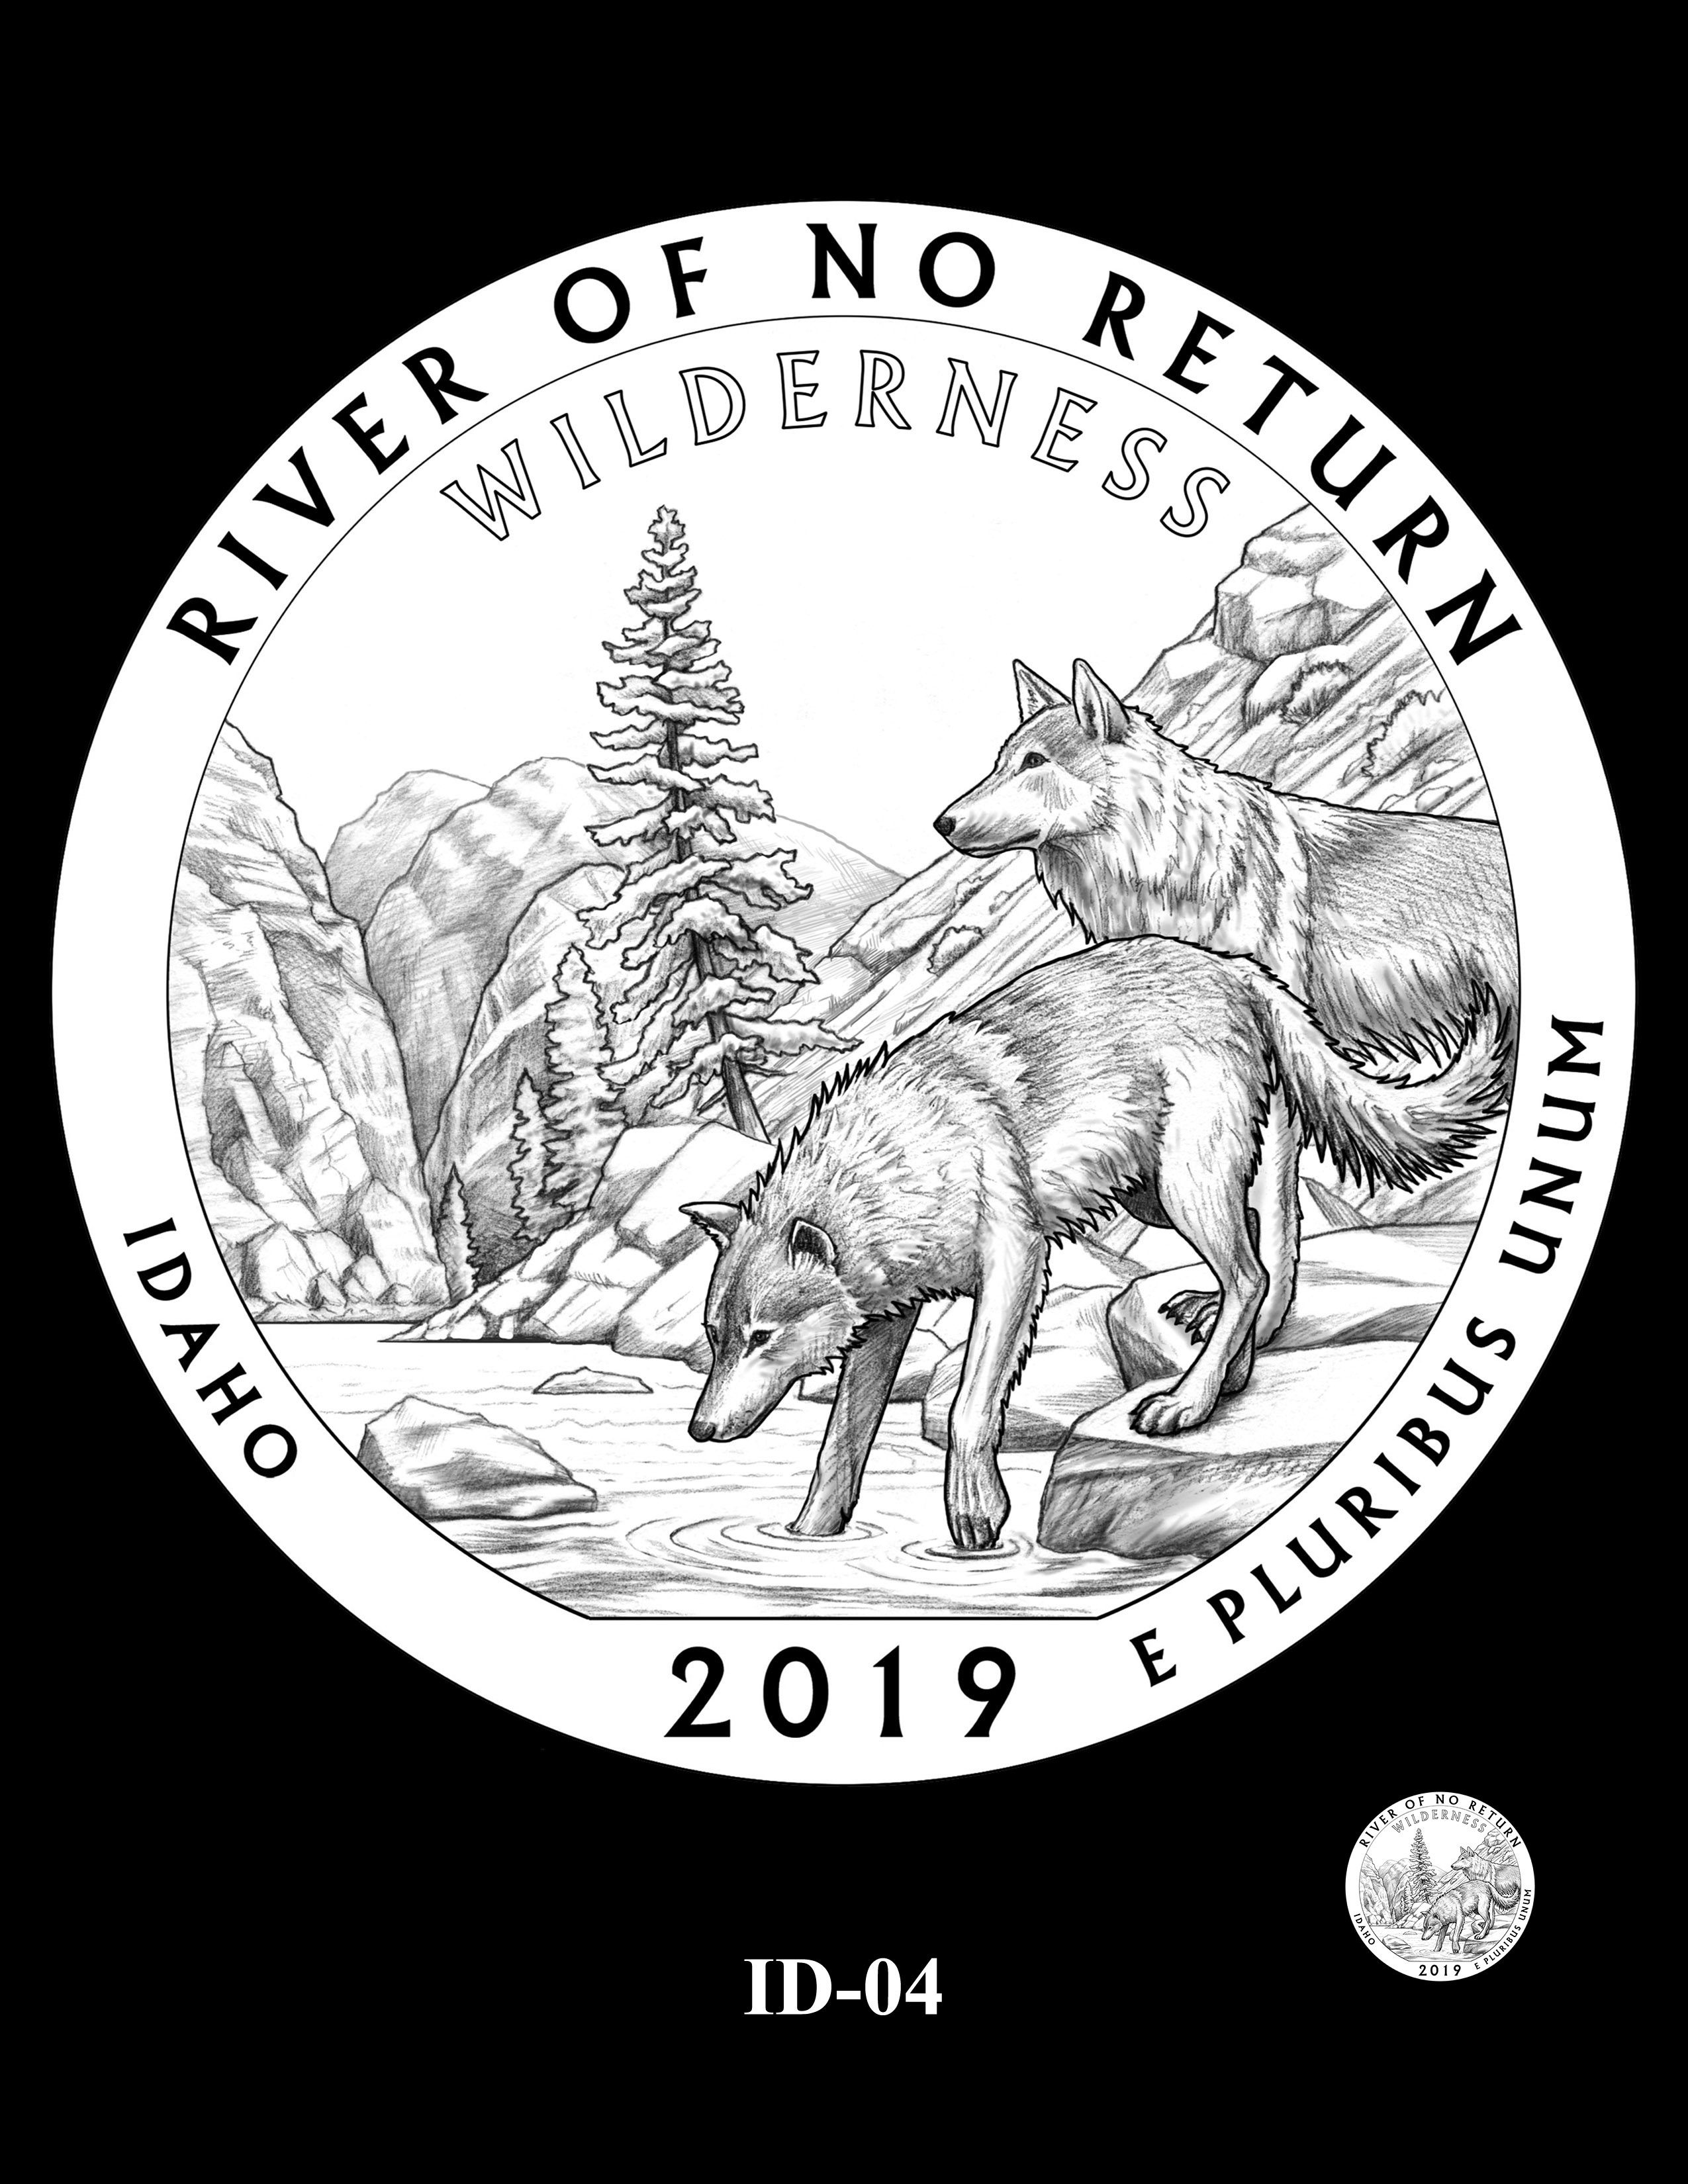 ID-04 -- 2019 America the Beautiful Quarters® Program